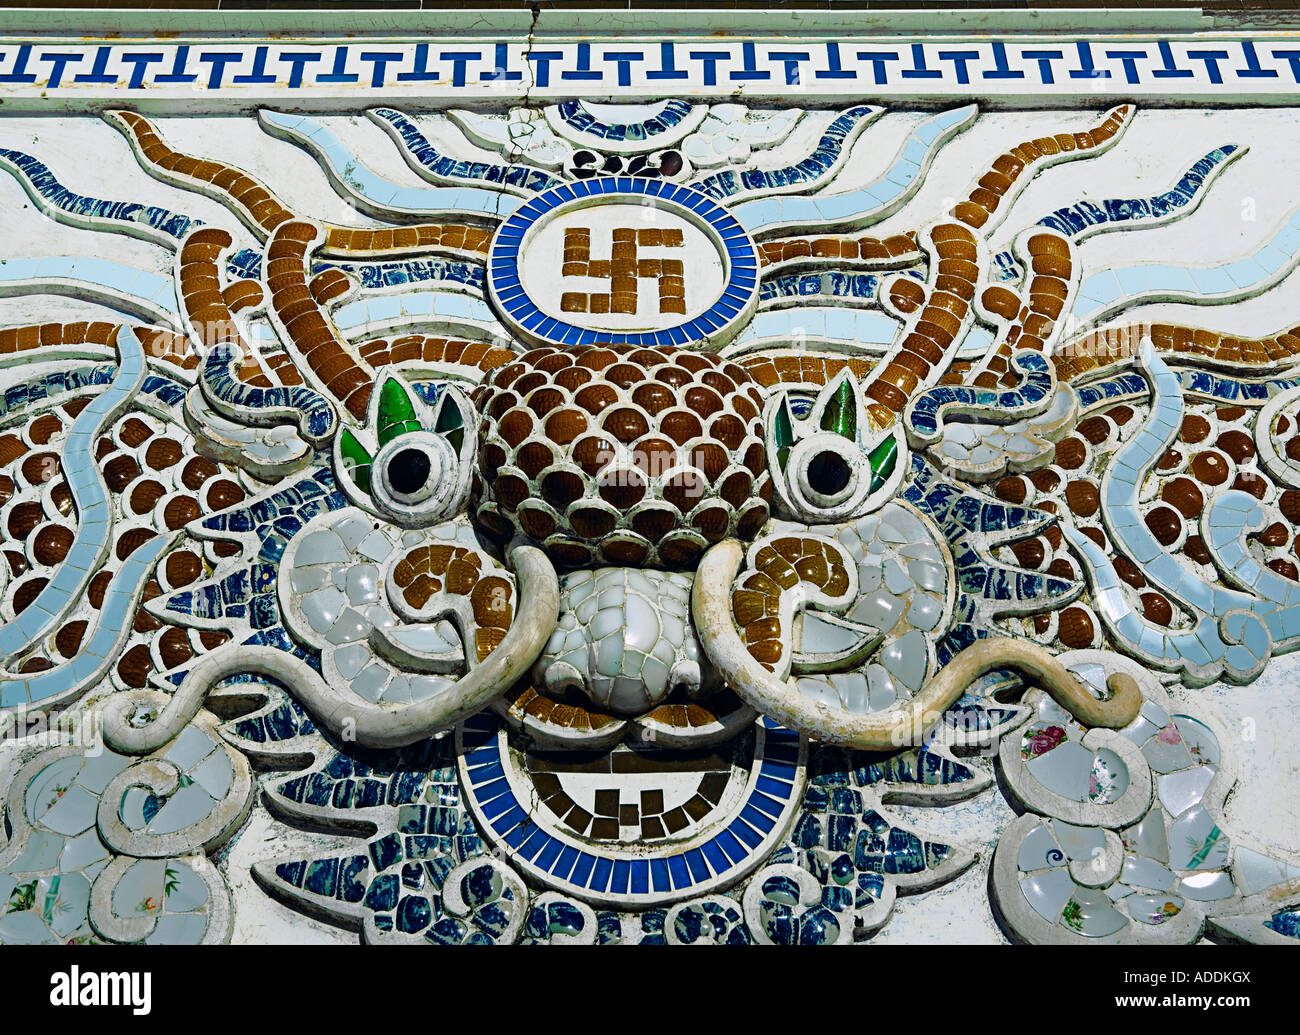 Mosaic panel of dragon and swastika at 'Long Son Pagoda', near 'Nha Trang', central Vietnam. - Stock Image